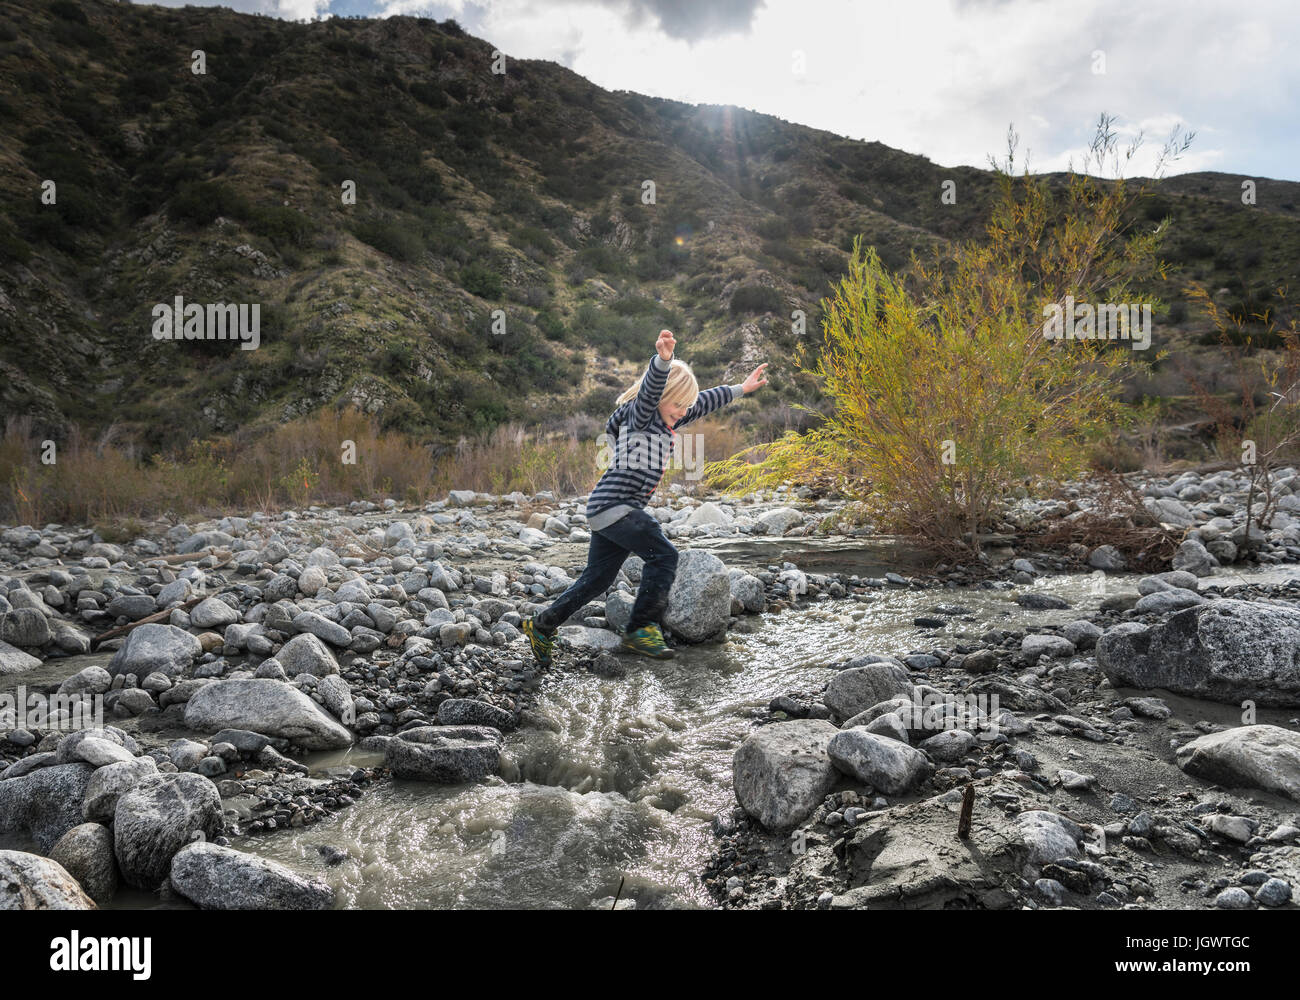 Boy leaping over rocks on riverbed - Stock Image